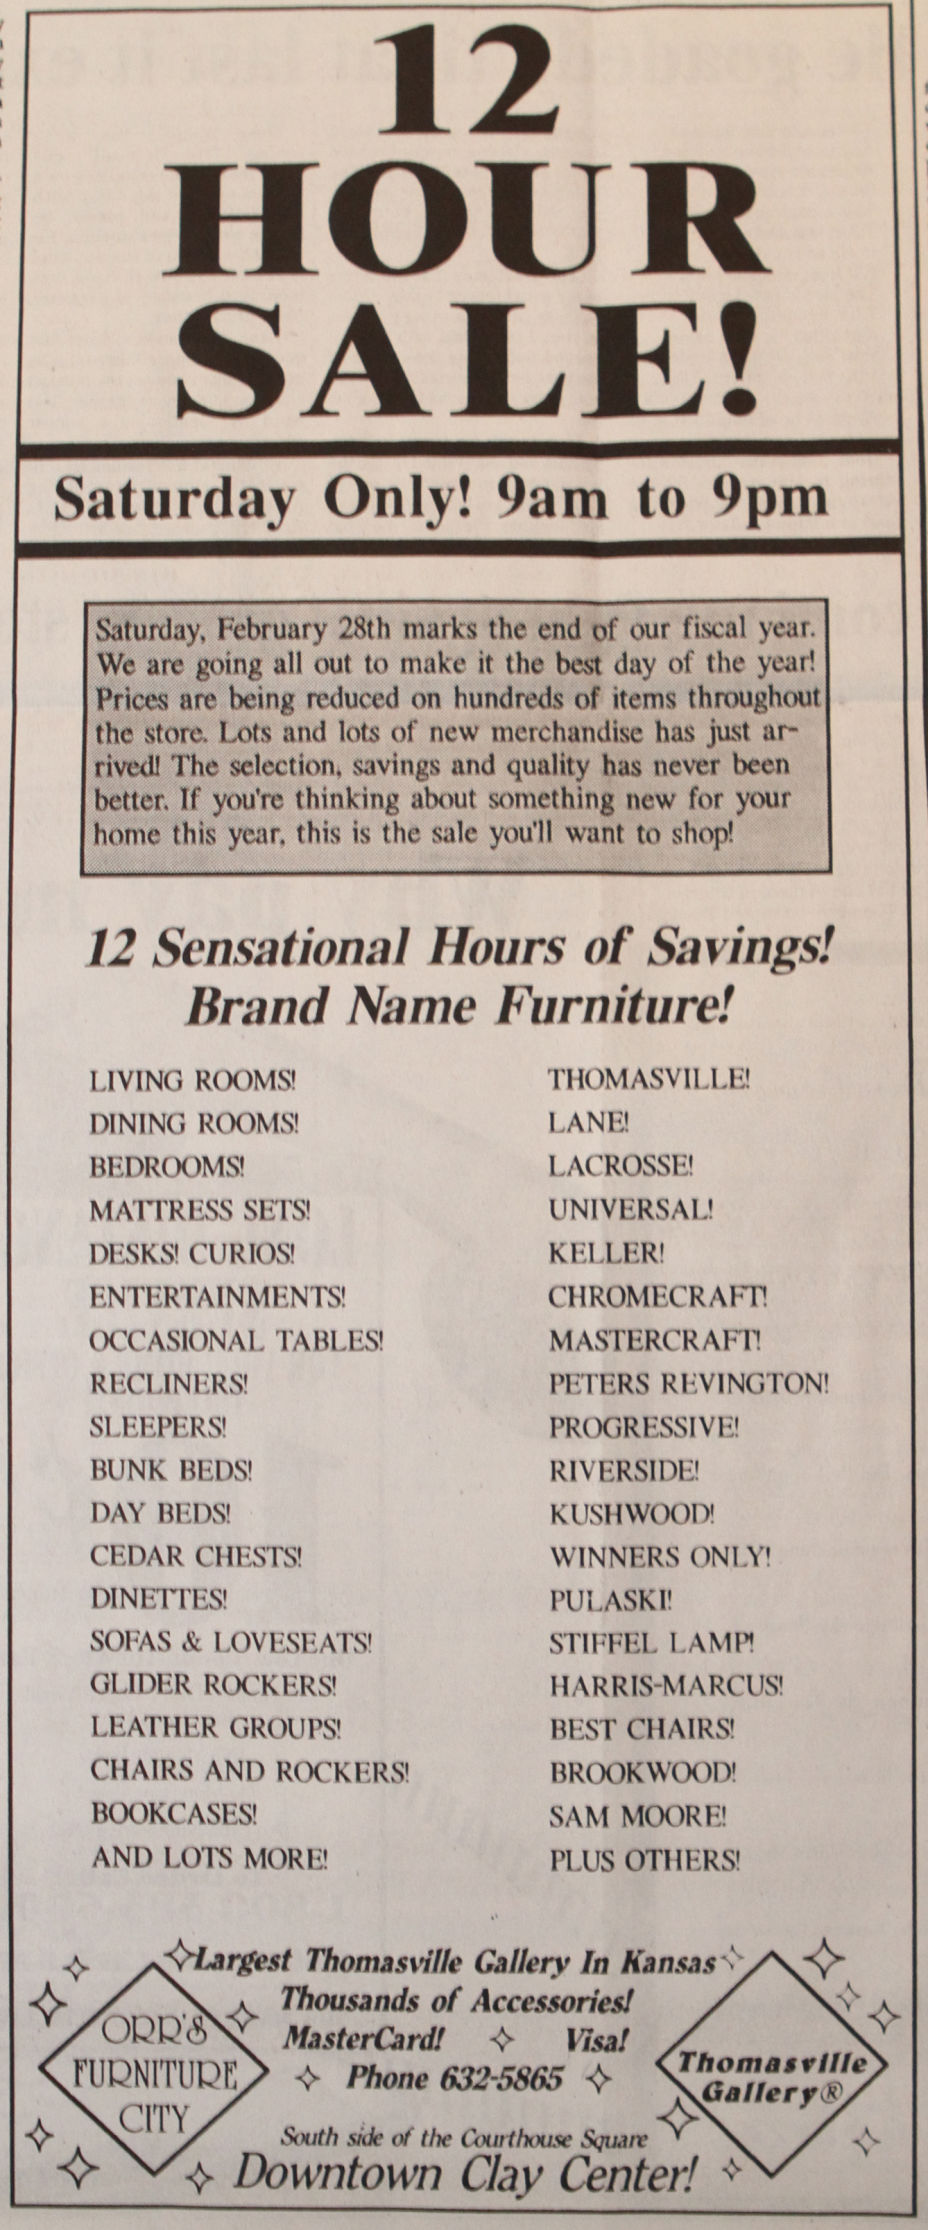 20 YEARS AGO ON FEBRUARY 28: (AD): 12 Hour Sale Today